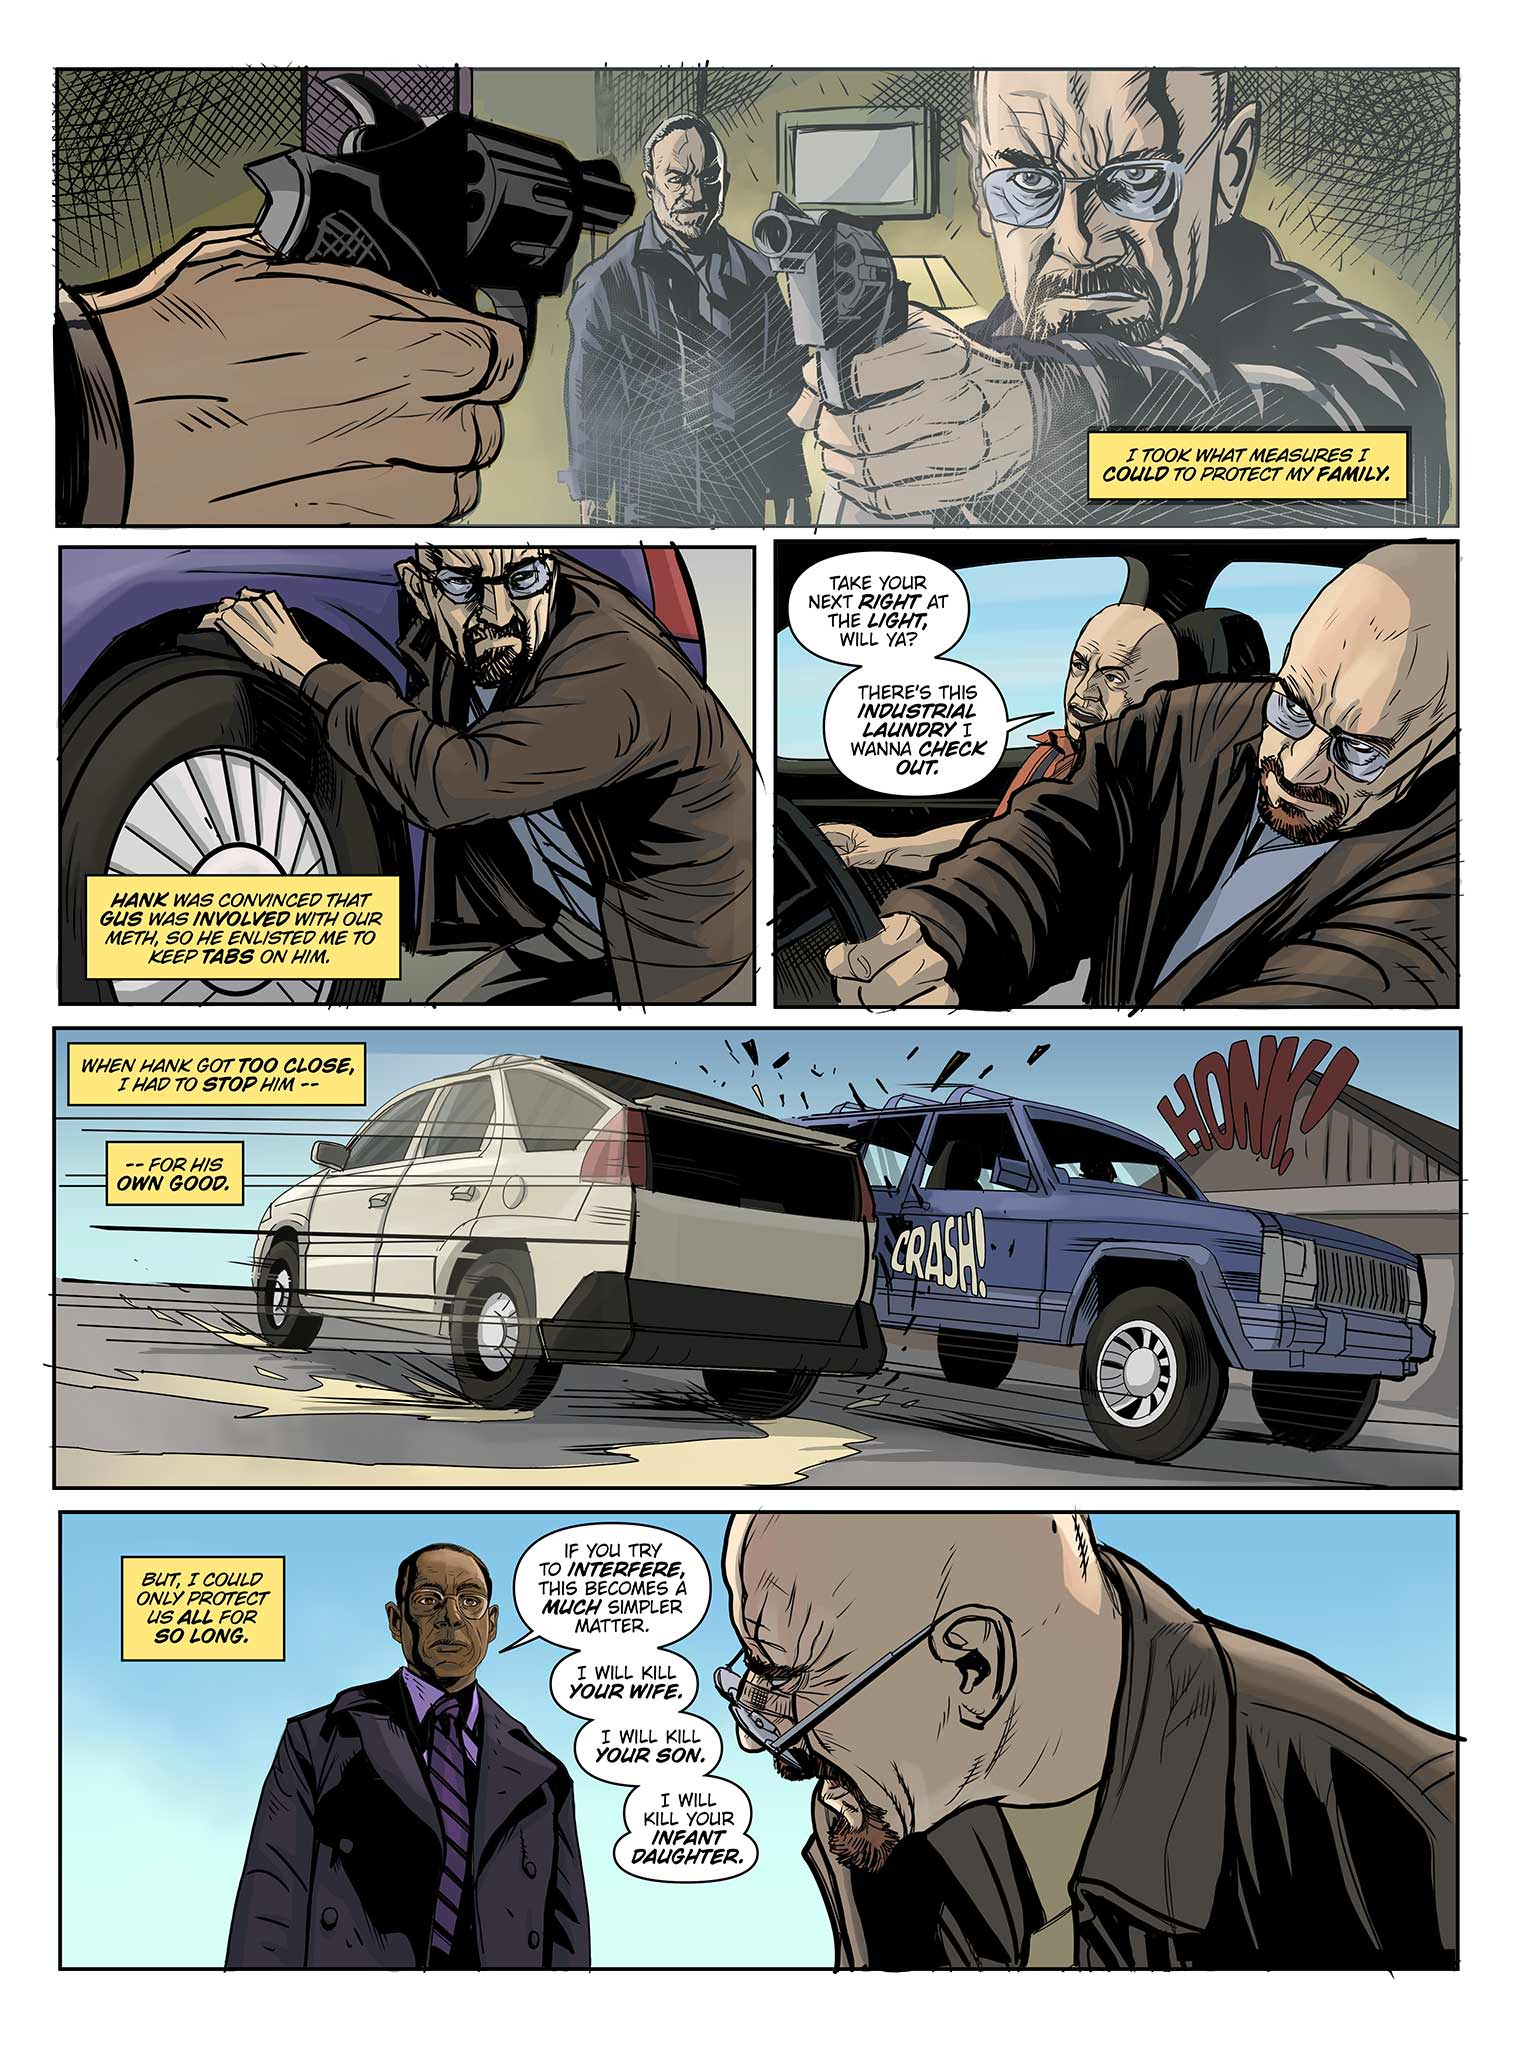 Read online Breaking Bad: All Bad Things comic -  Issue # Full - 15